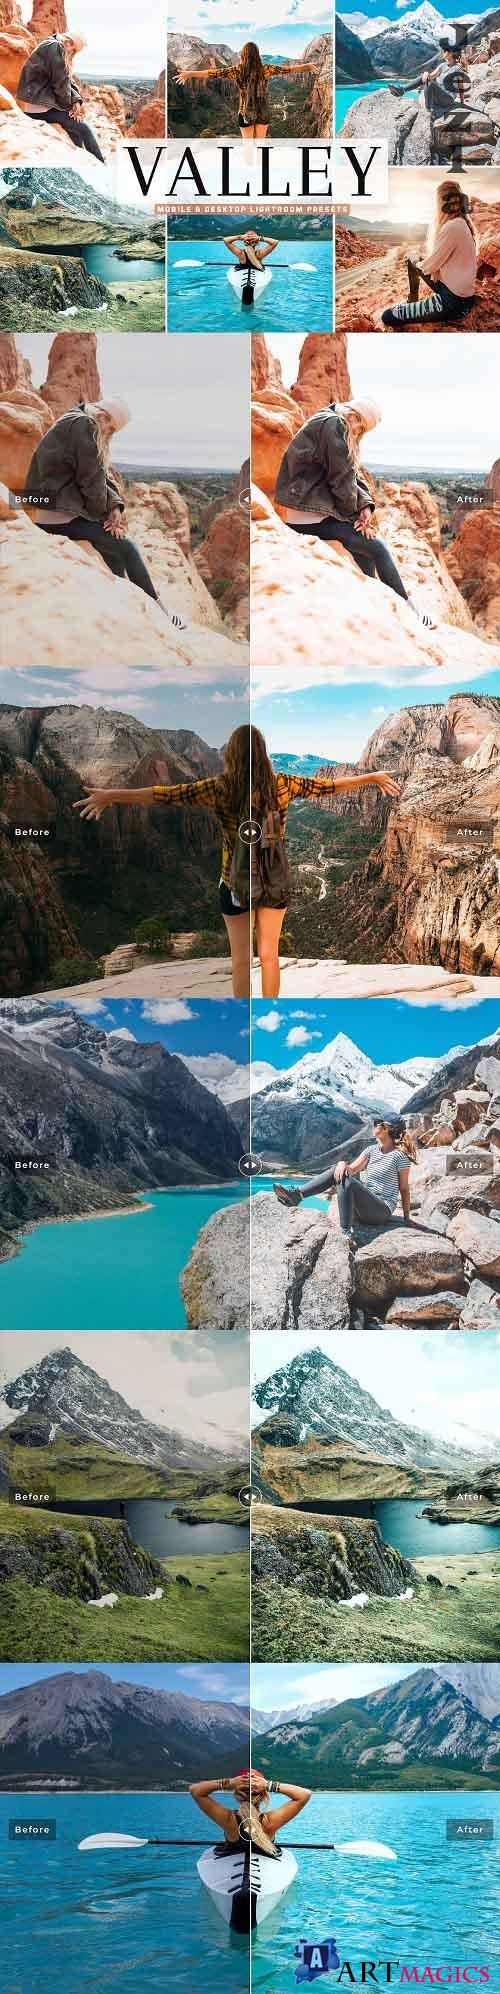 Valley Pro Lightroom Presets - 5353825 - Mobile & Desktop